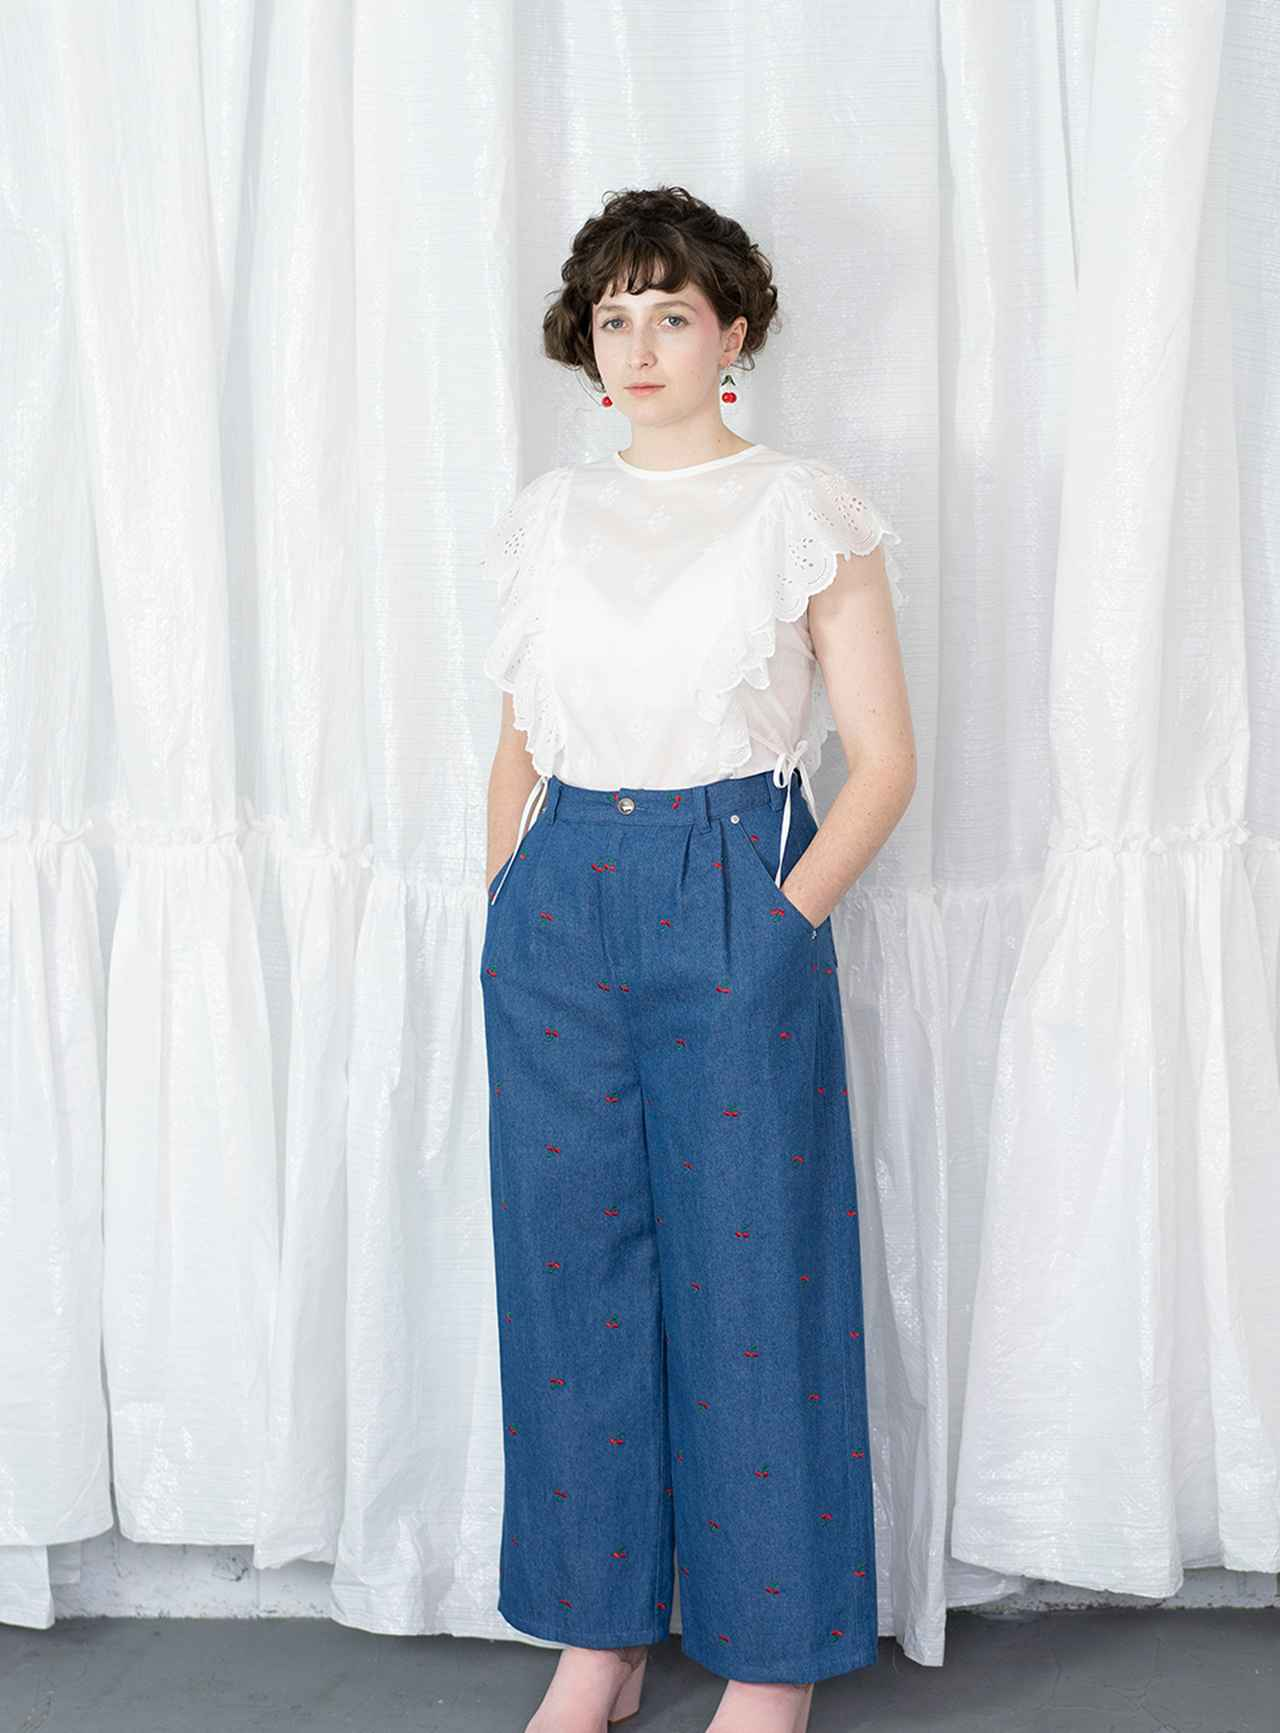 Images : トップス¥27,000